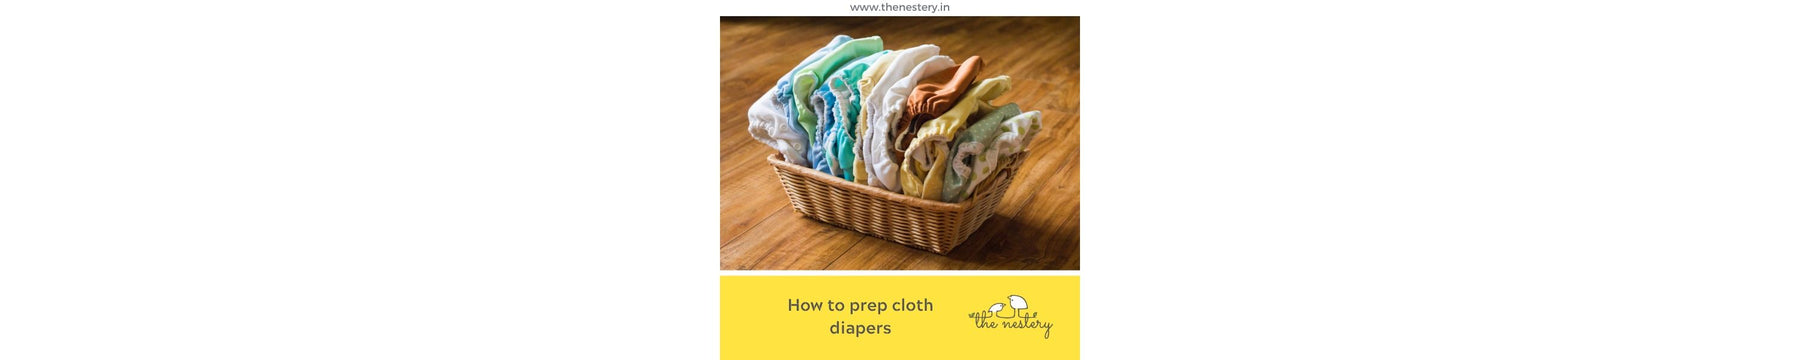 How to prep cloth diapers before use